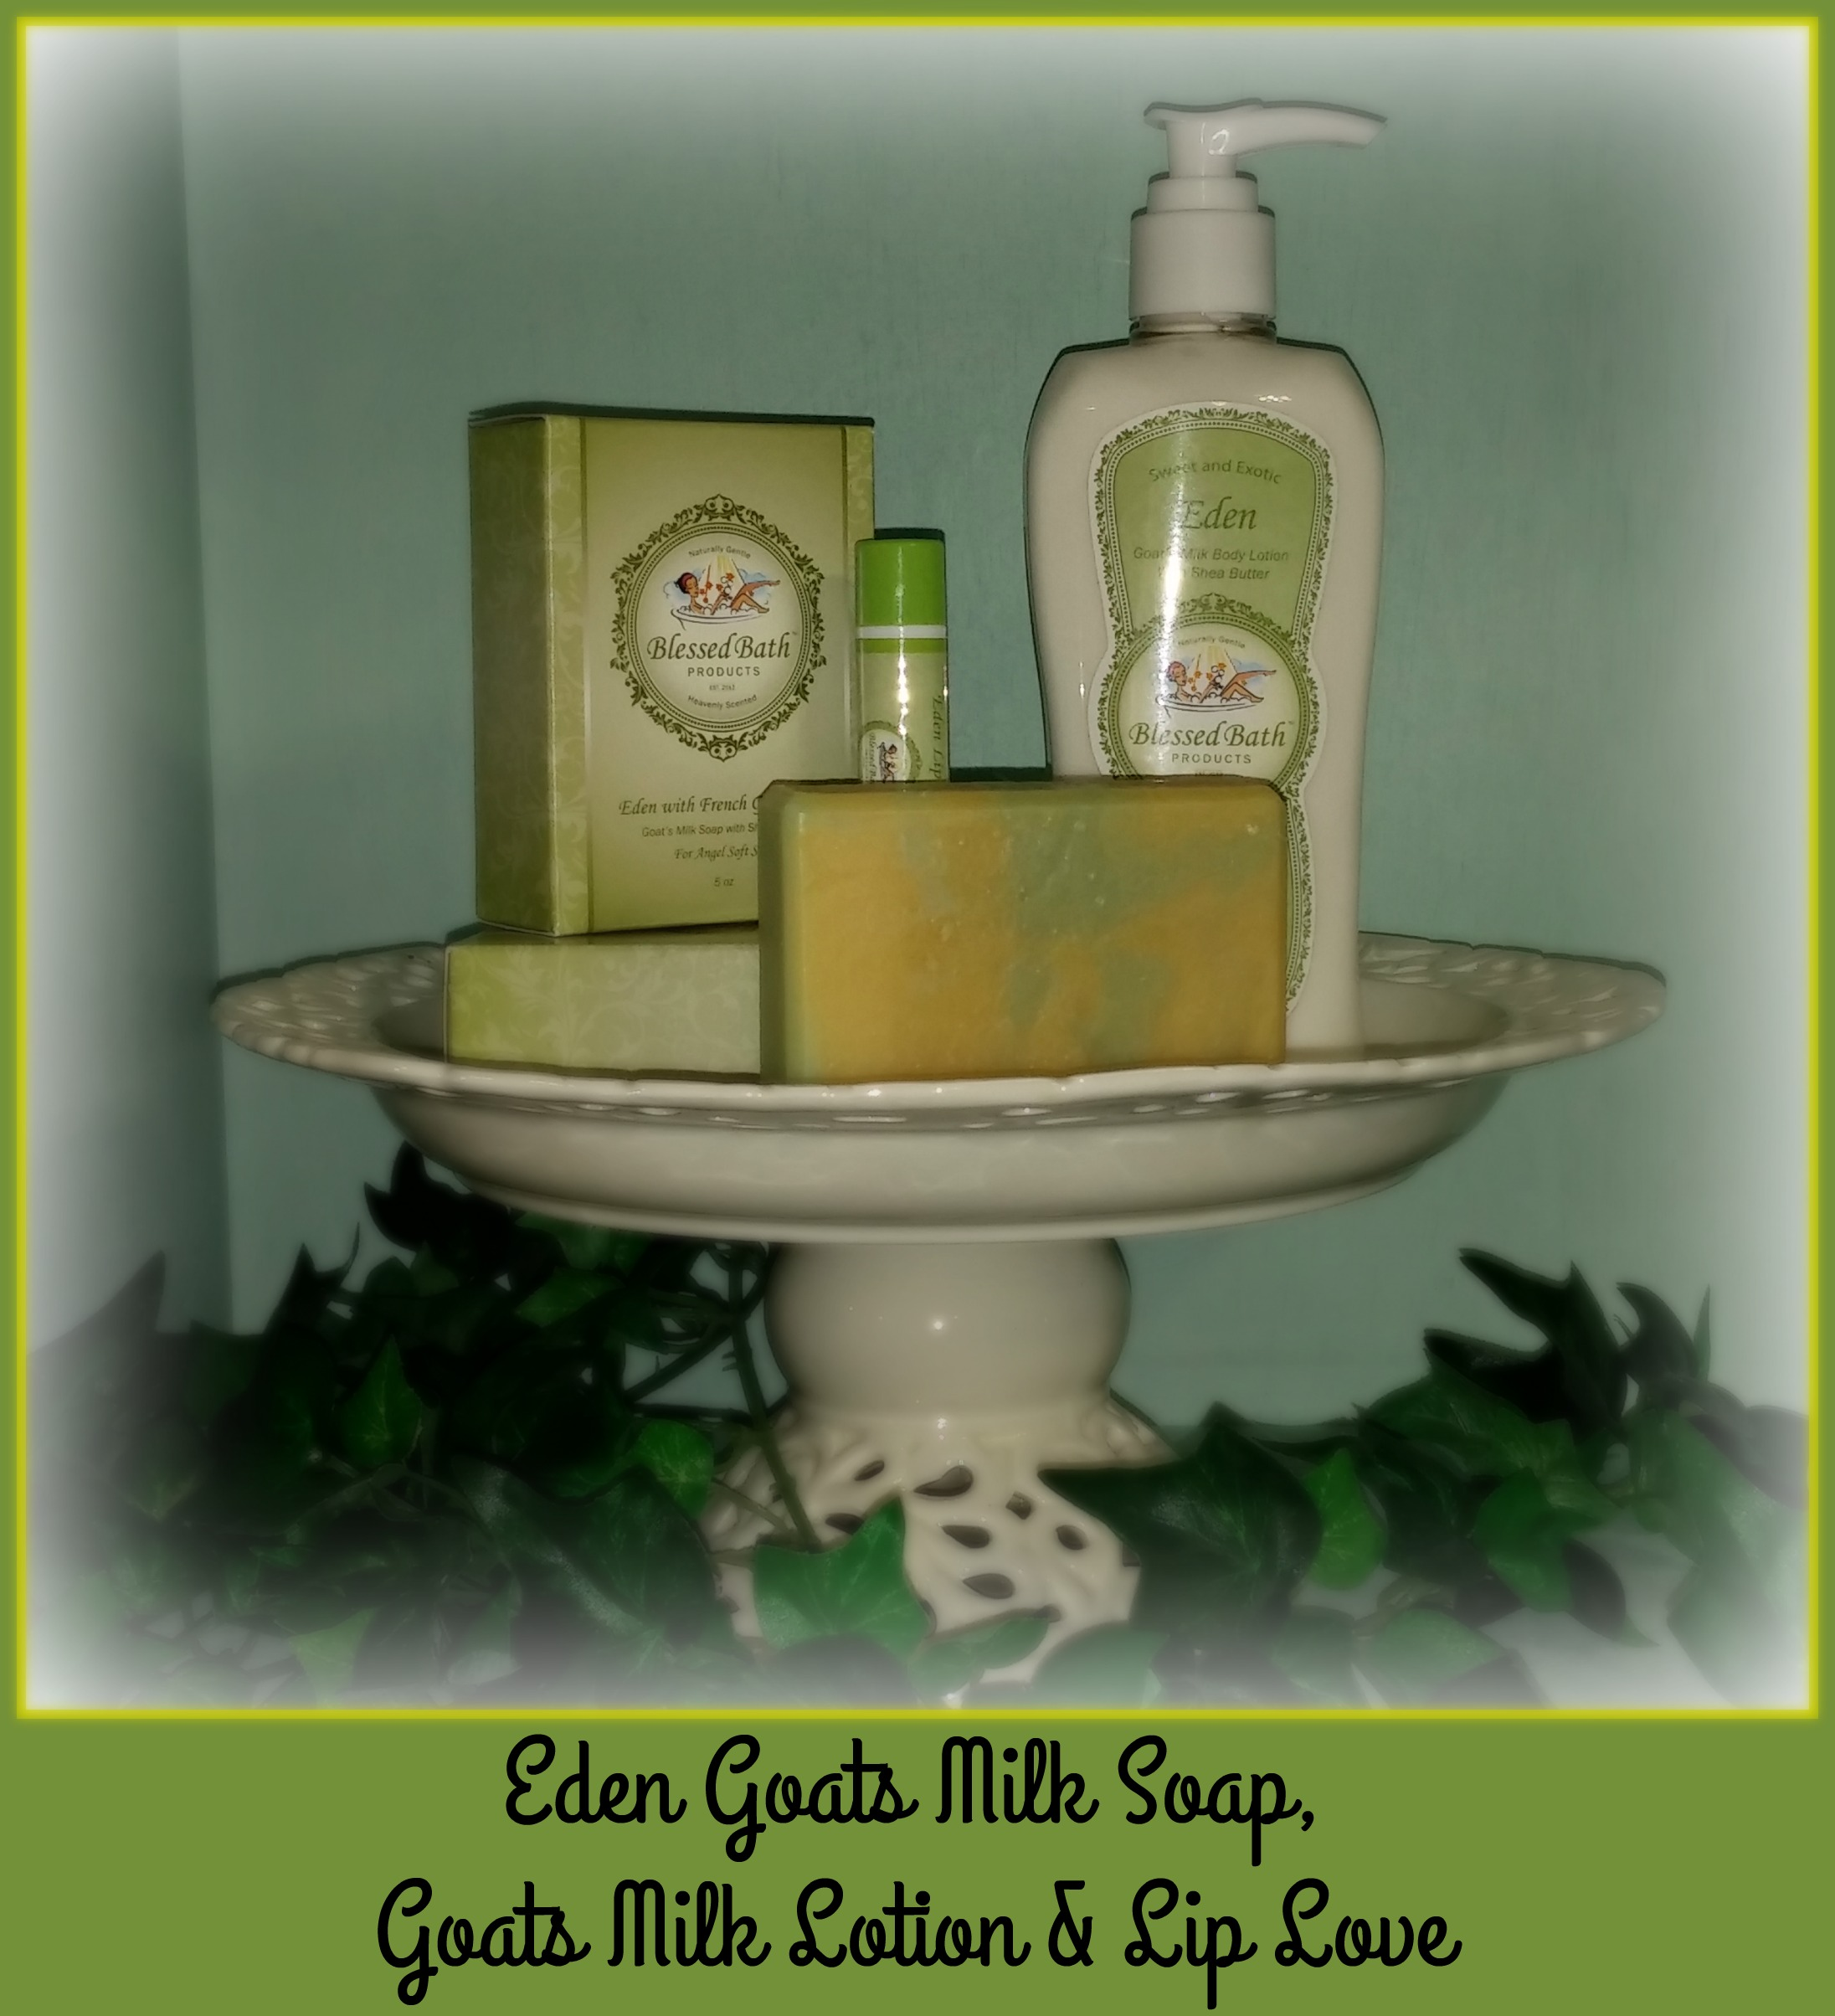 Eden Soap & Lotion Combo